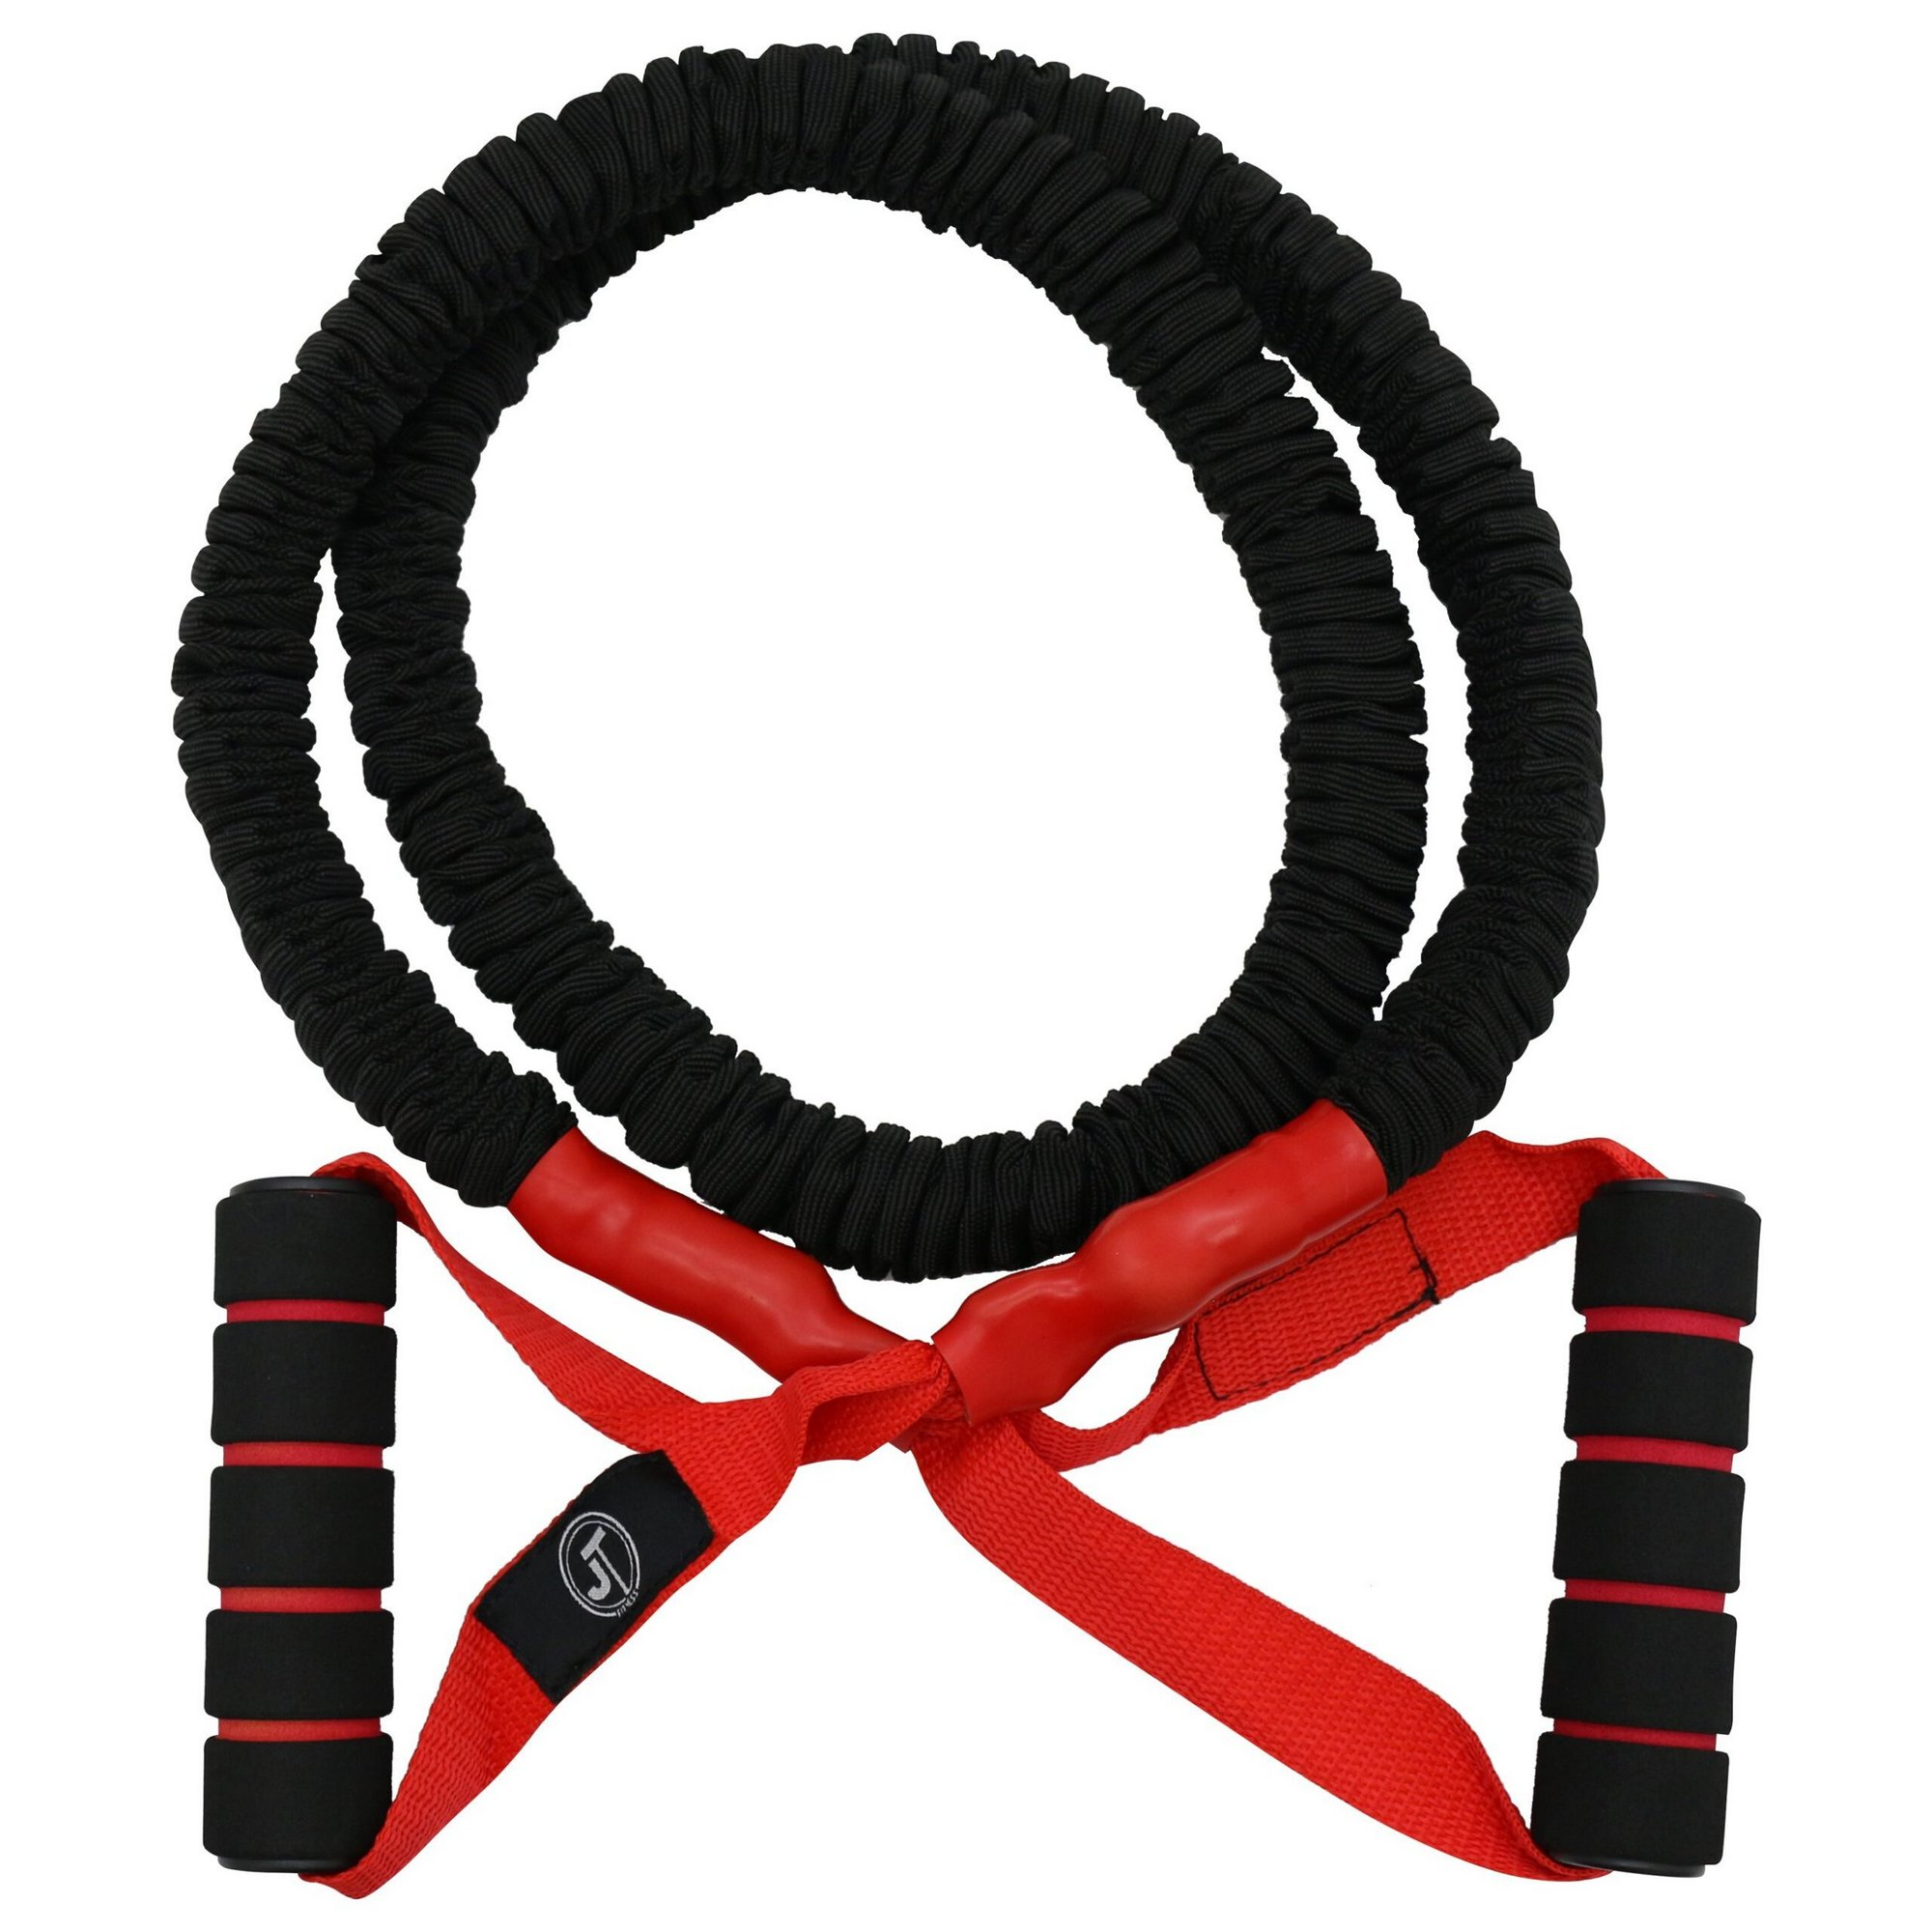 Image of JT Resistance Band